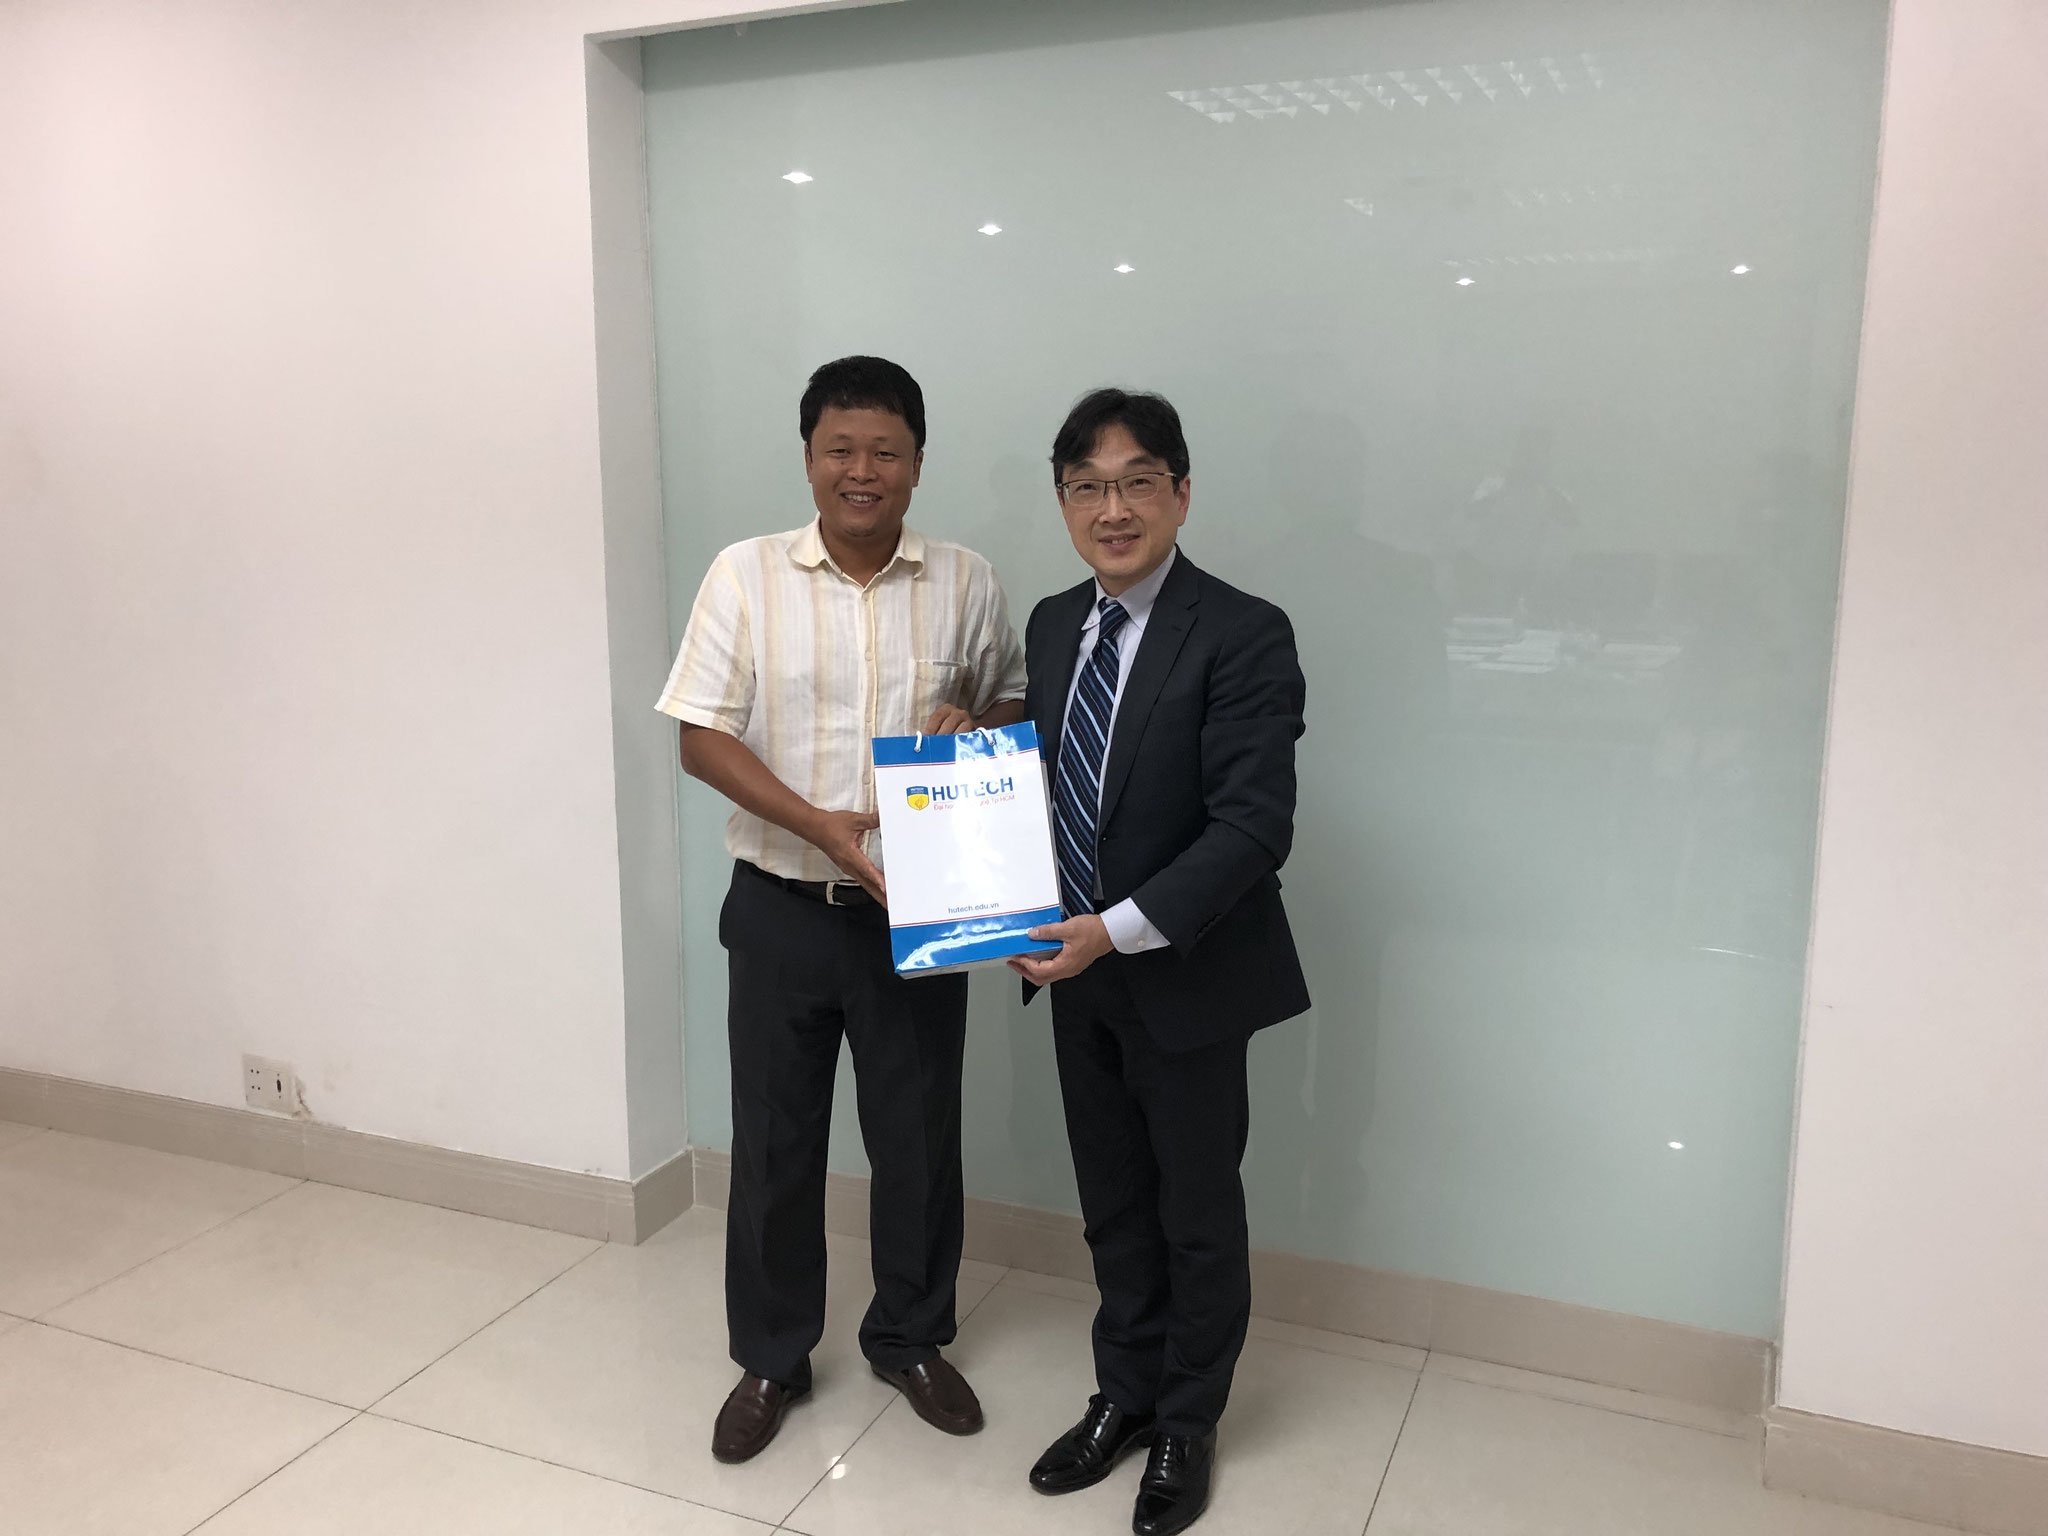 HUTECH UNIVERSITY OF TECHNOLOGY's Director Dr. KIEU XUAN HUNG